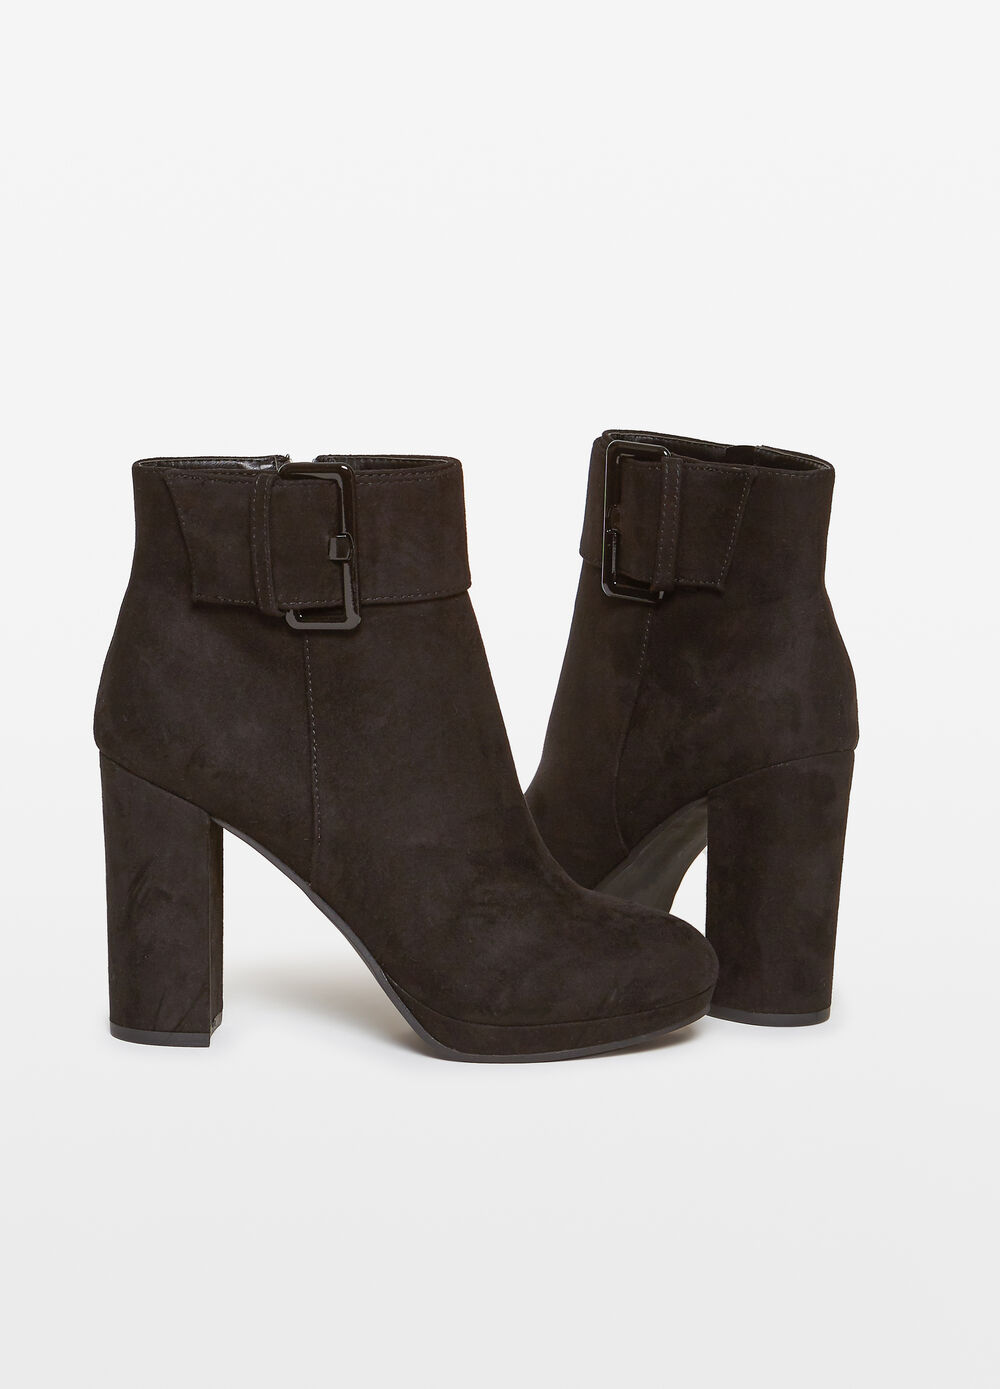 Ankle boots with chunky heel and buckle